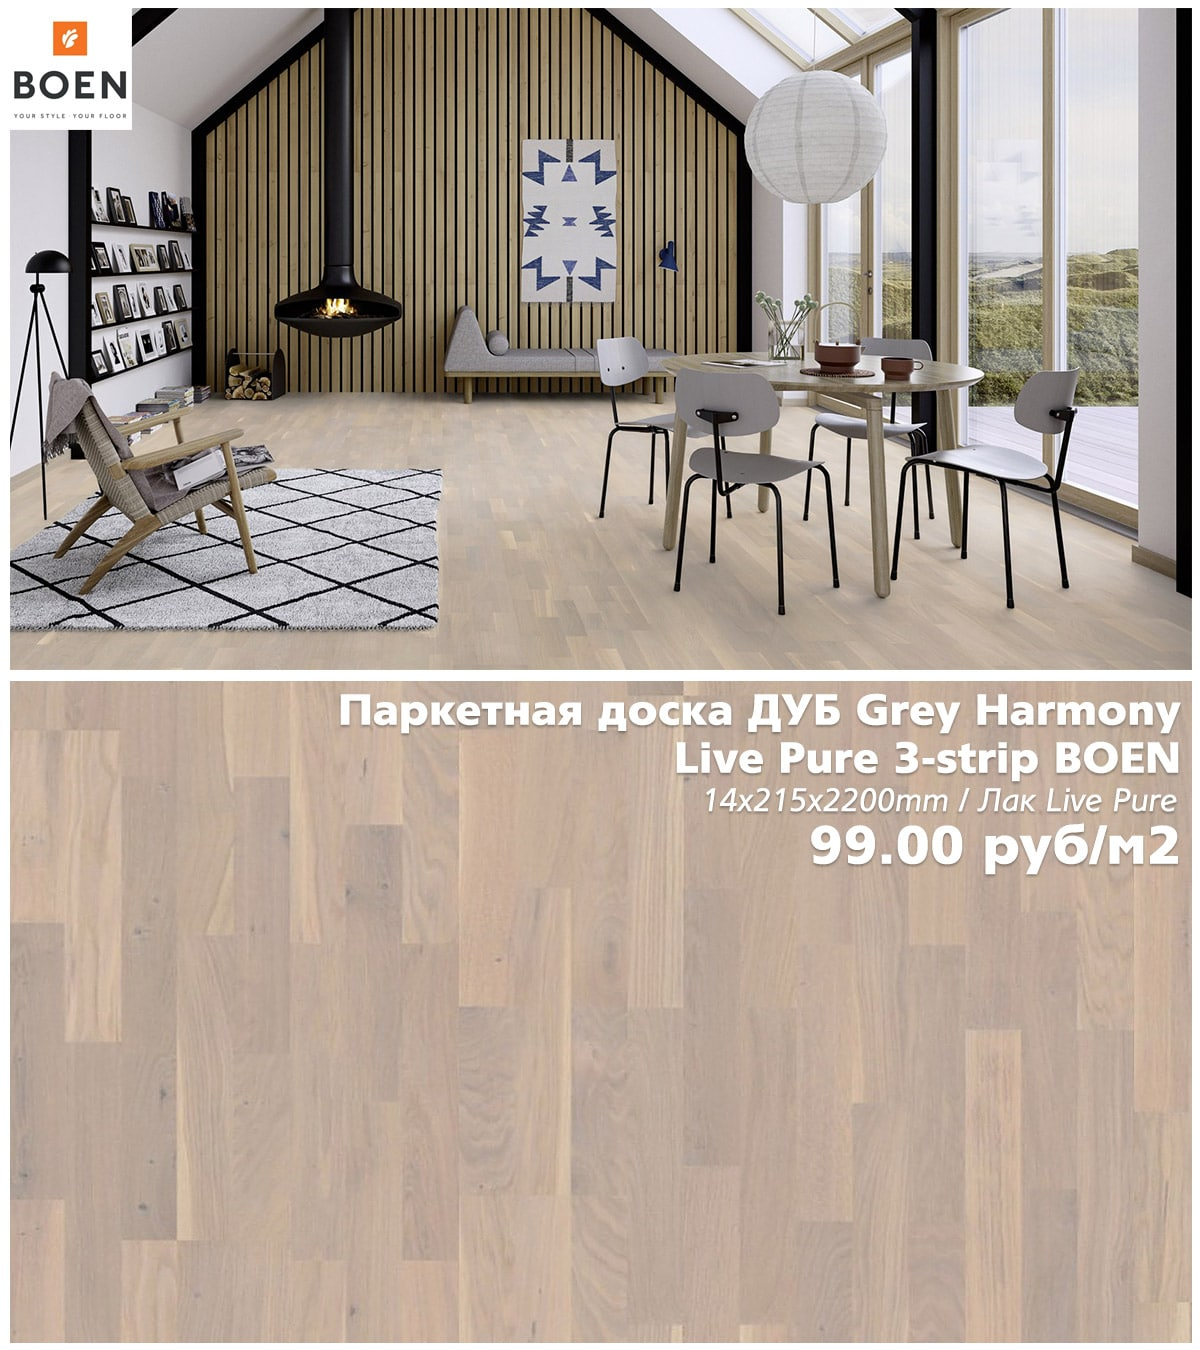 Дуб Grey Harmony Live Pure 3-strip